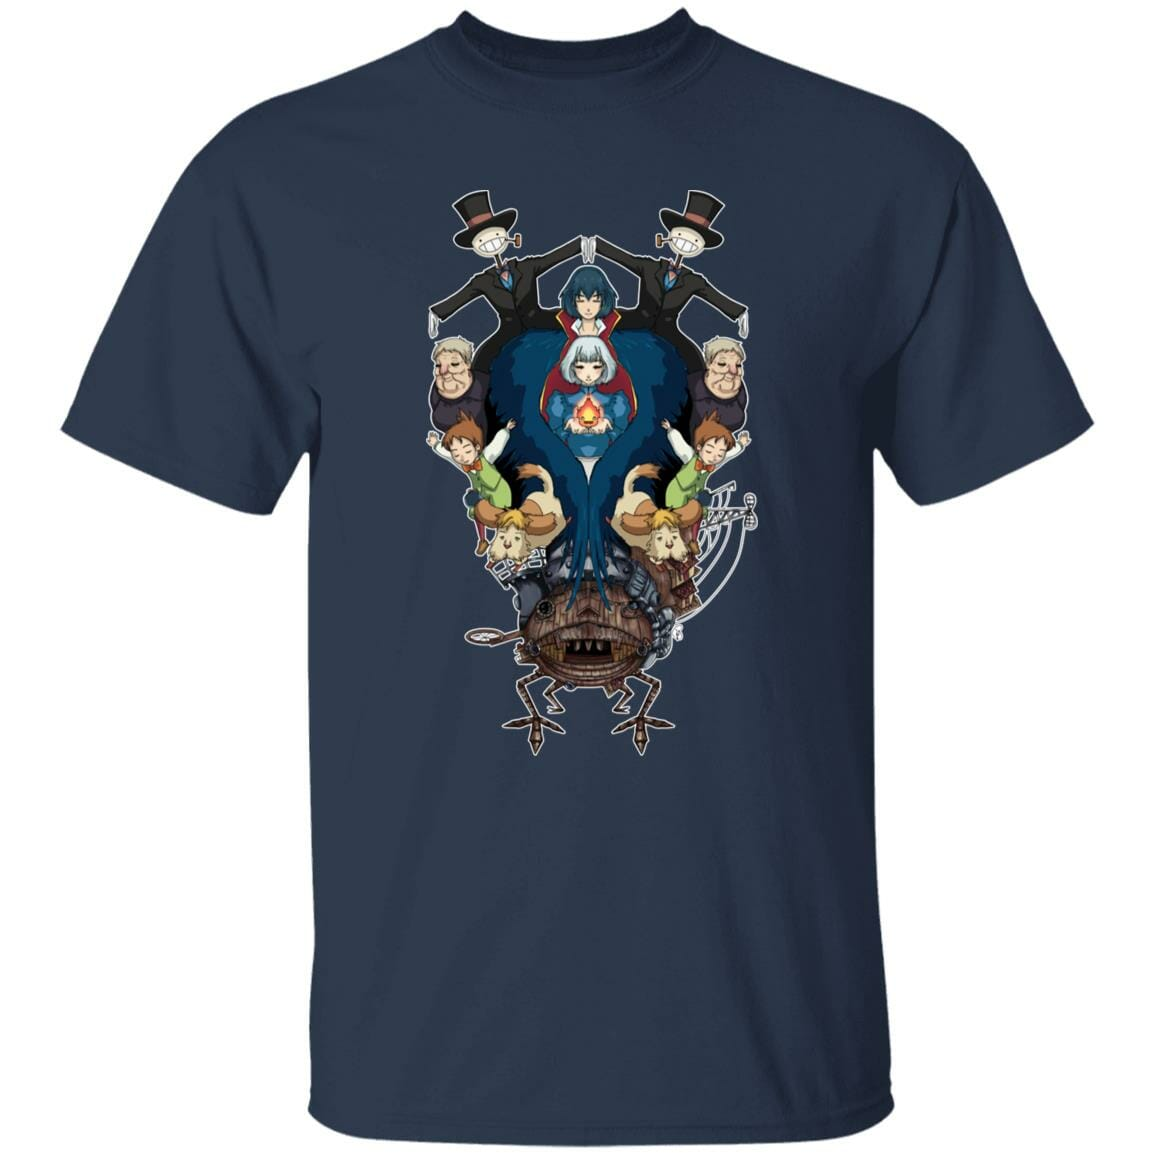 Howl's Moving Castle Characters Mirror T Shirt